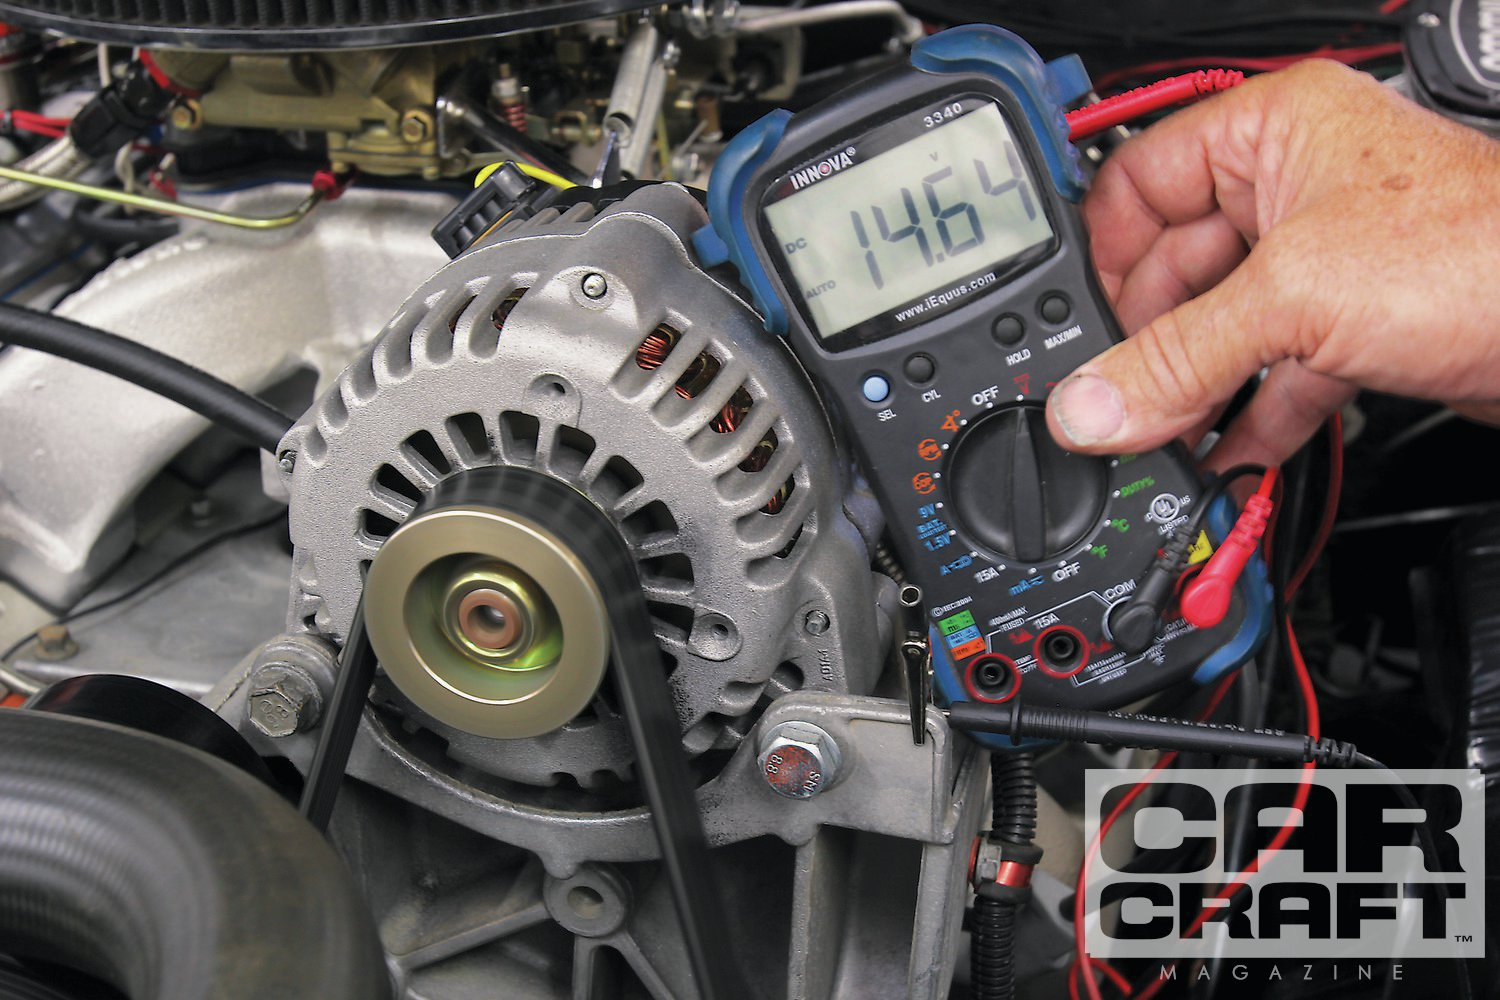 hight resolution of a late model gm alternator conversion like this cs130 can really pump up the charging